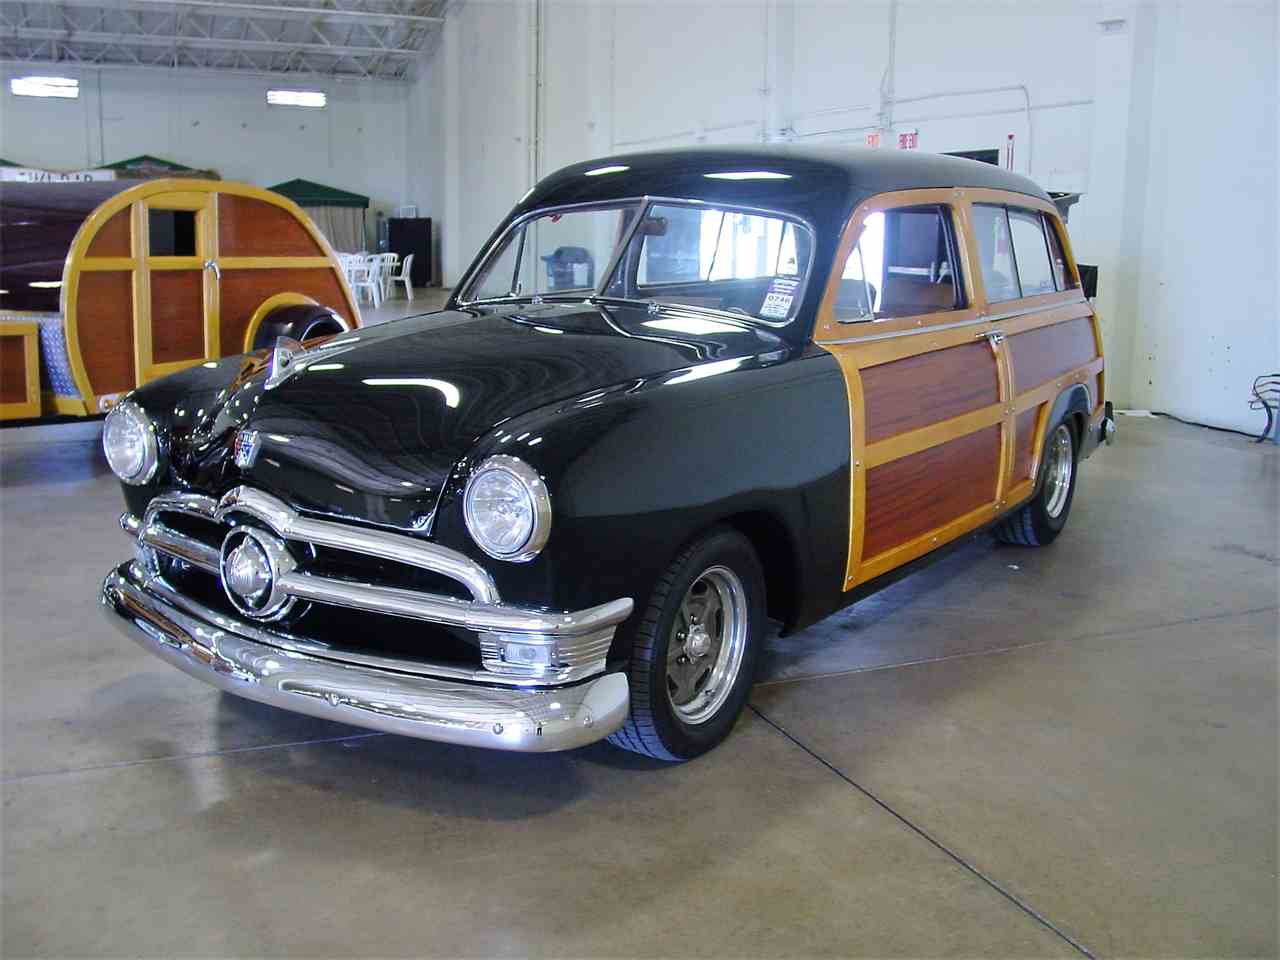 Large Picture of Classic '50 Ford Woody Wagon located in California - $119,000.00 Offered by a Private Seller - NDEI